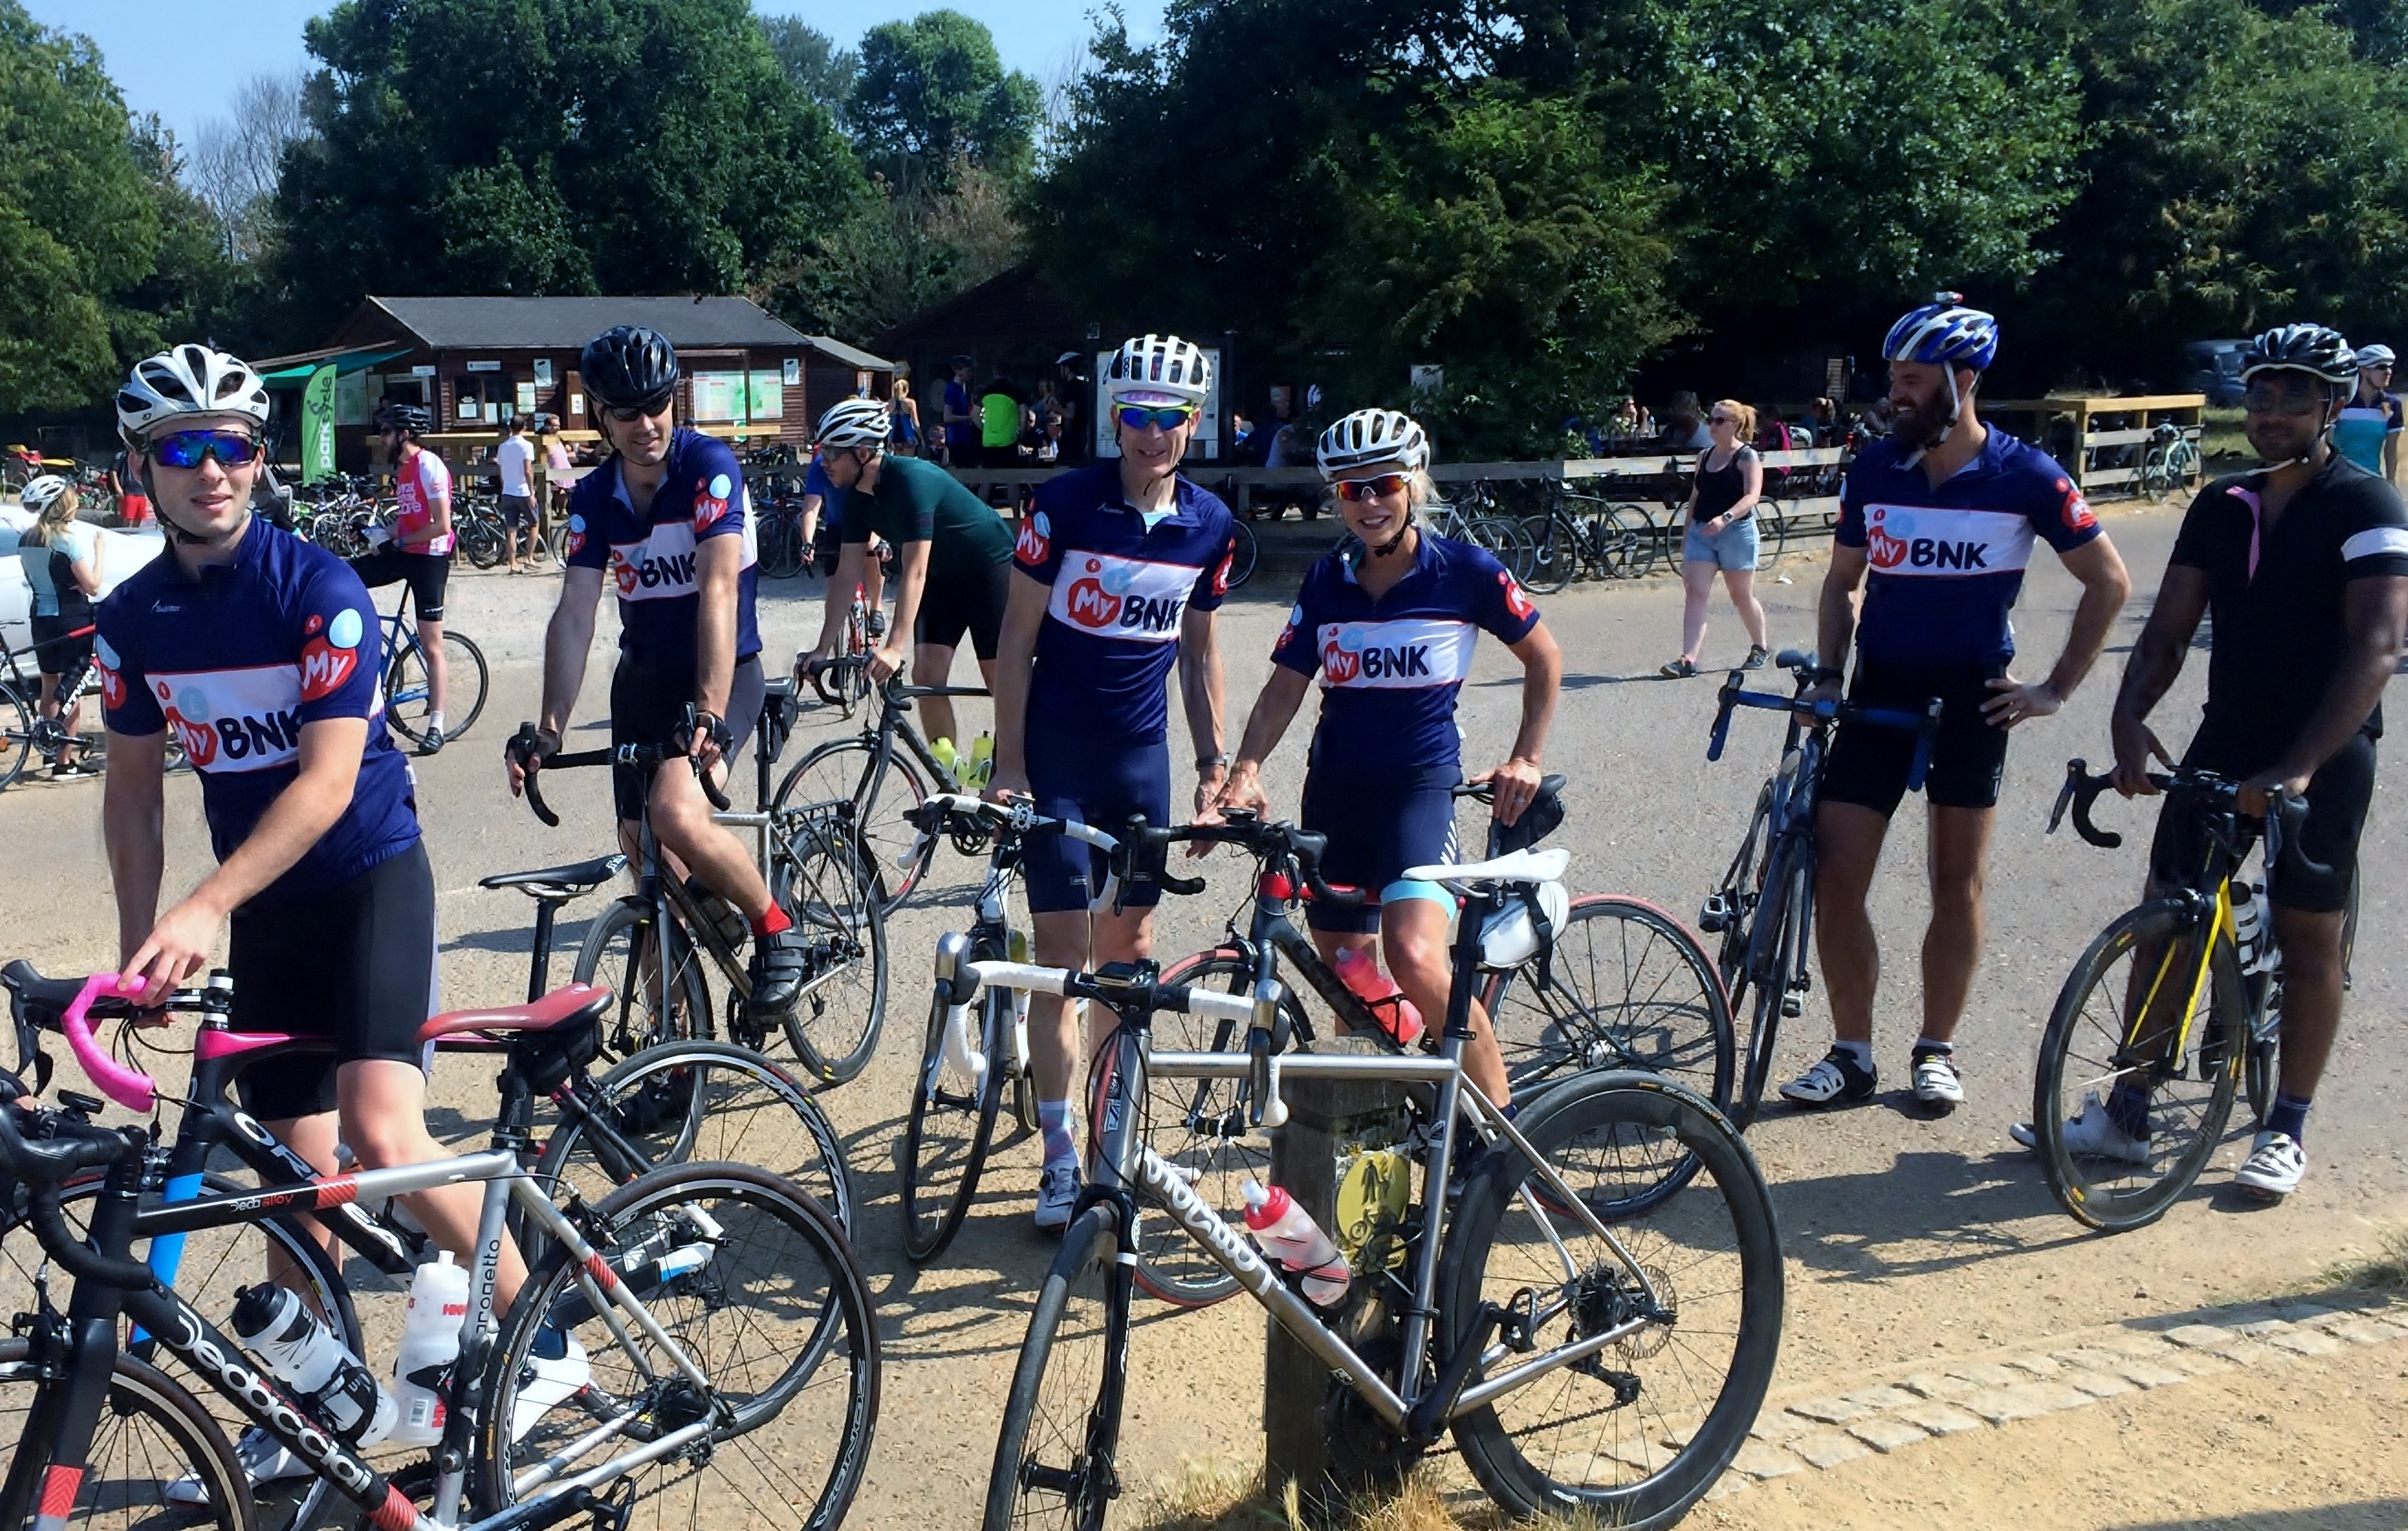 CEO's Blog – Peddle to the metal! Raising vital funds for young people